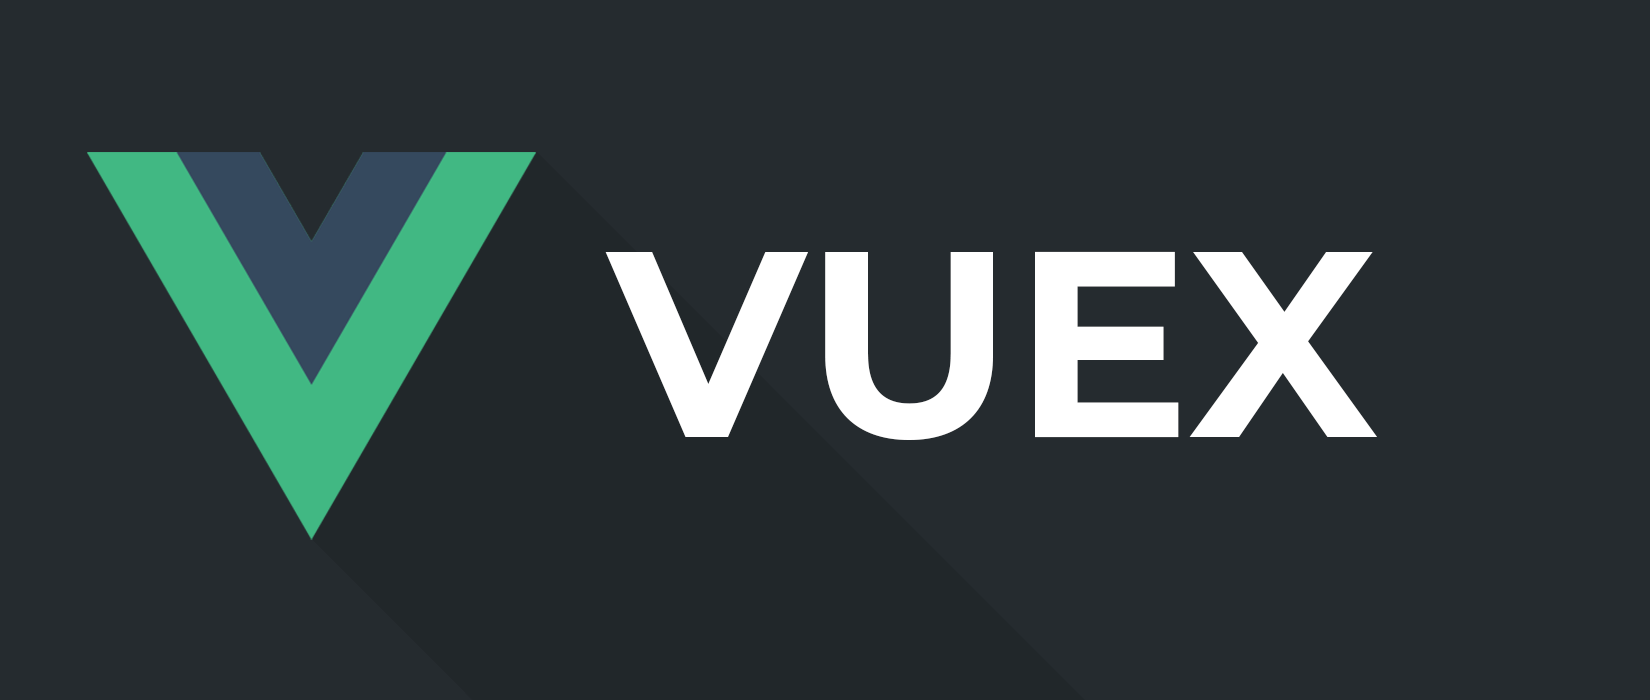 Vuejs Vuex State Management for Beginners - Digital Fortress